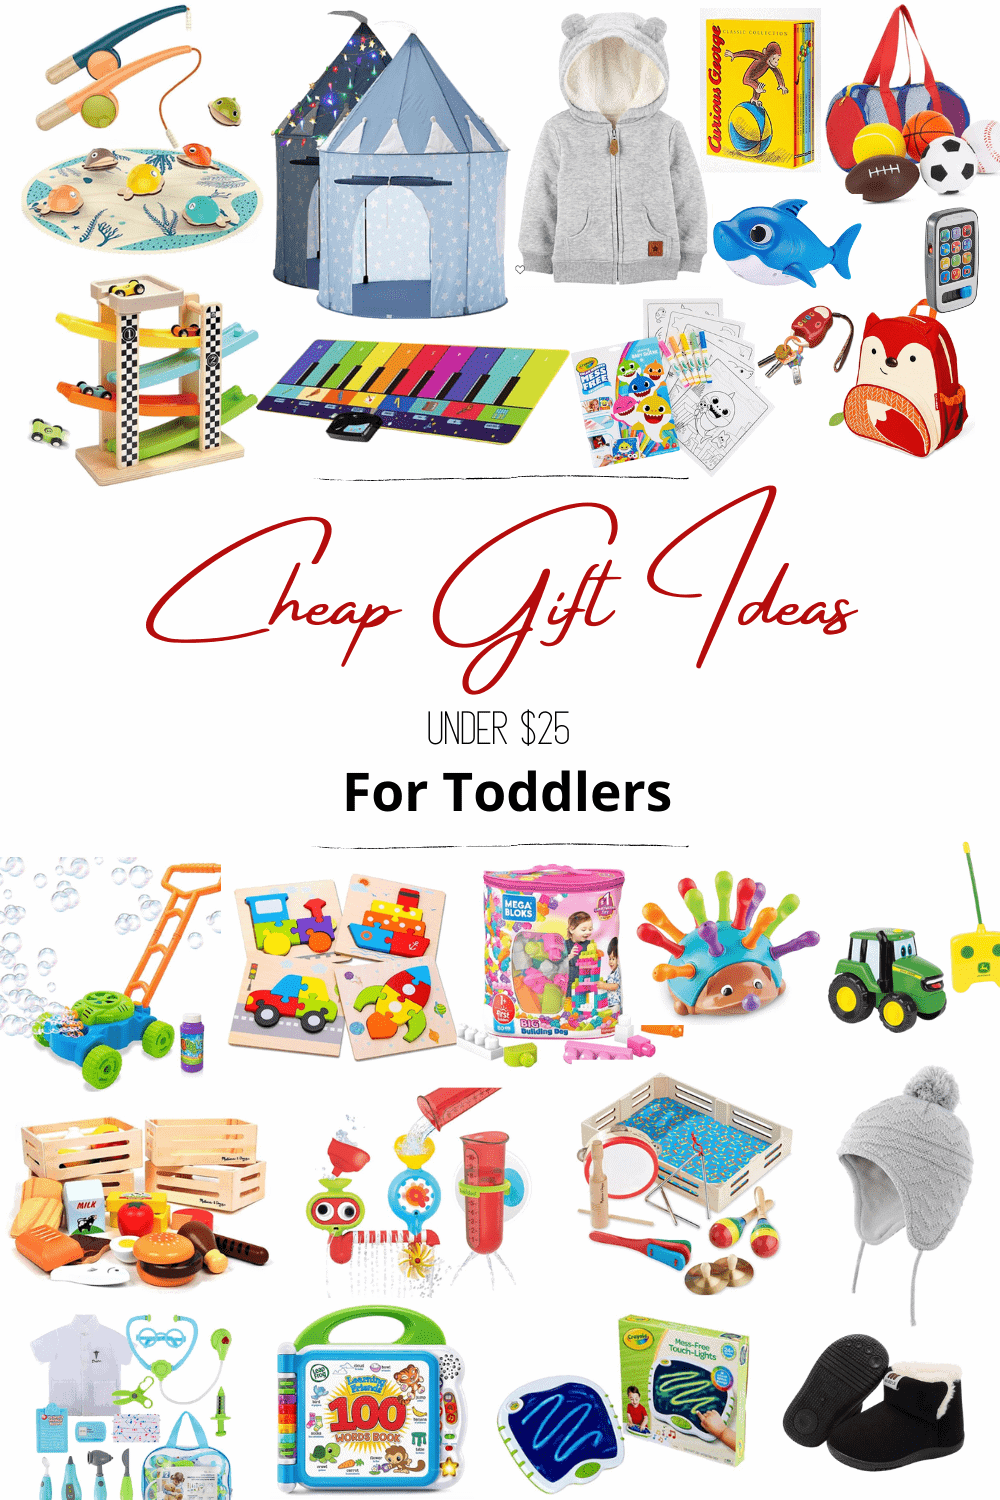 cheap gift ideas for toddlers